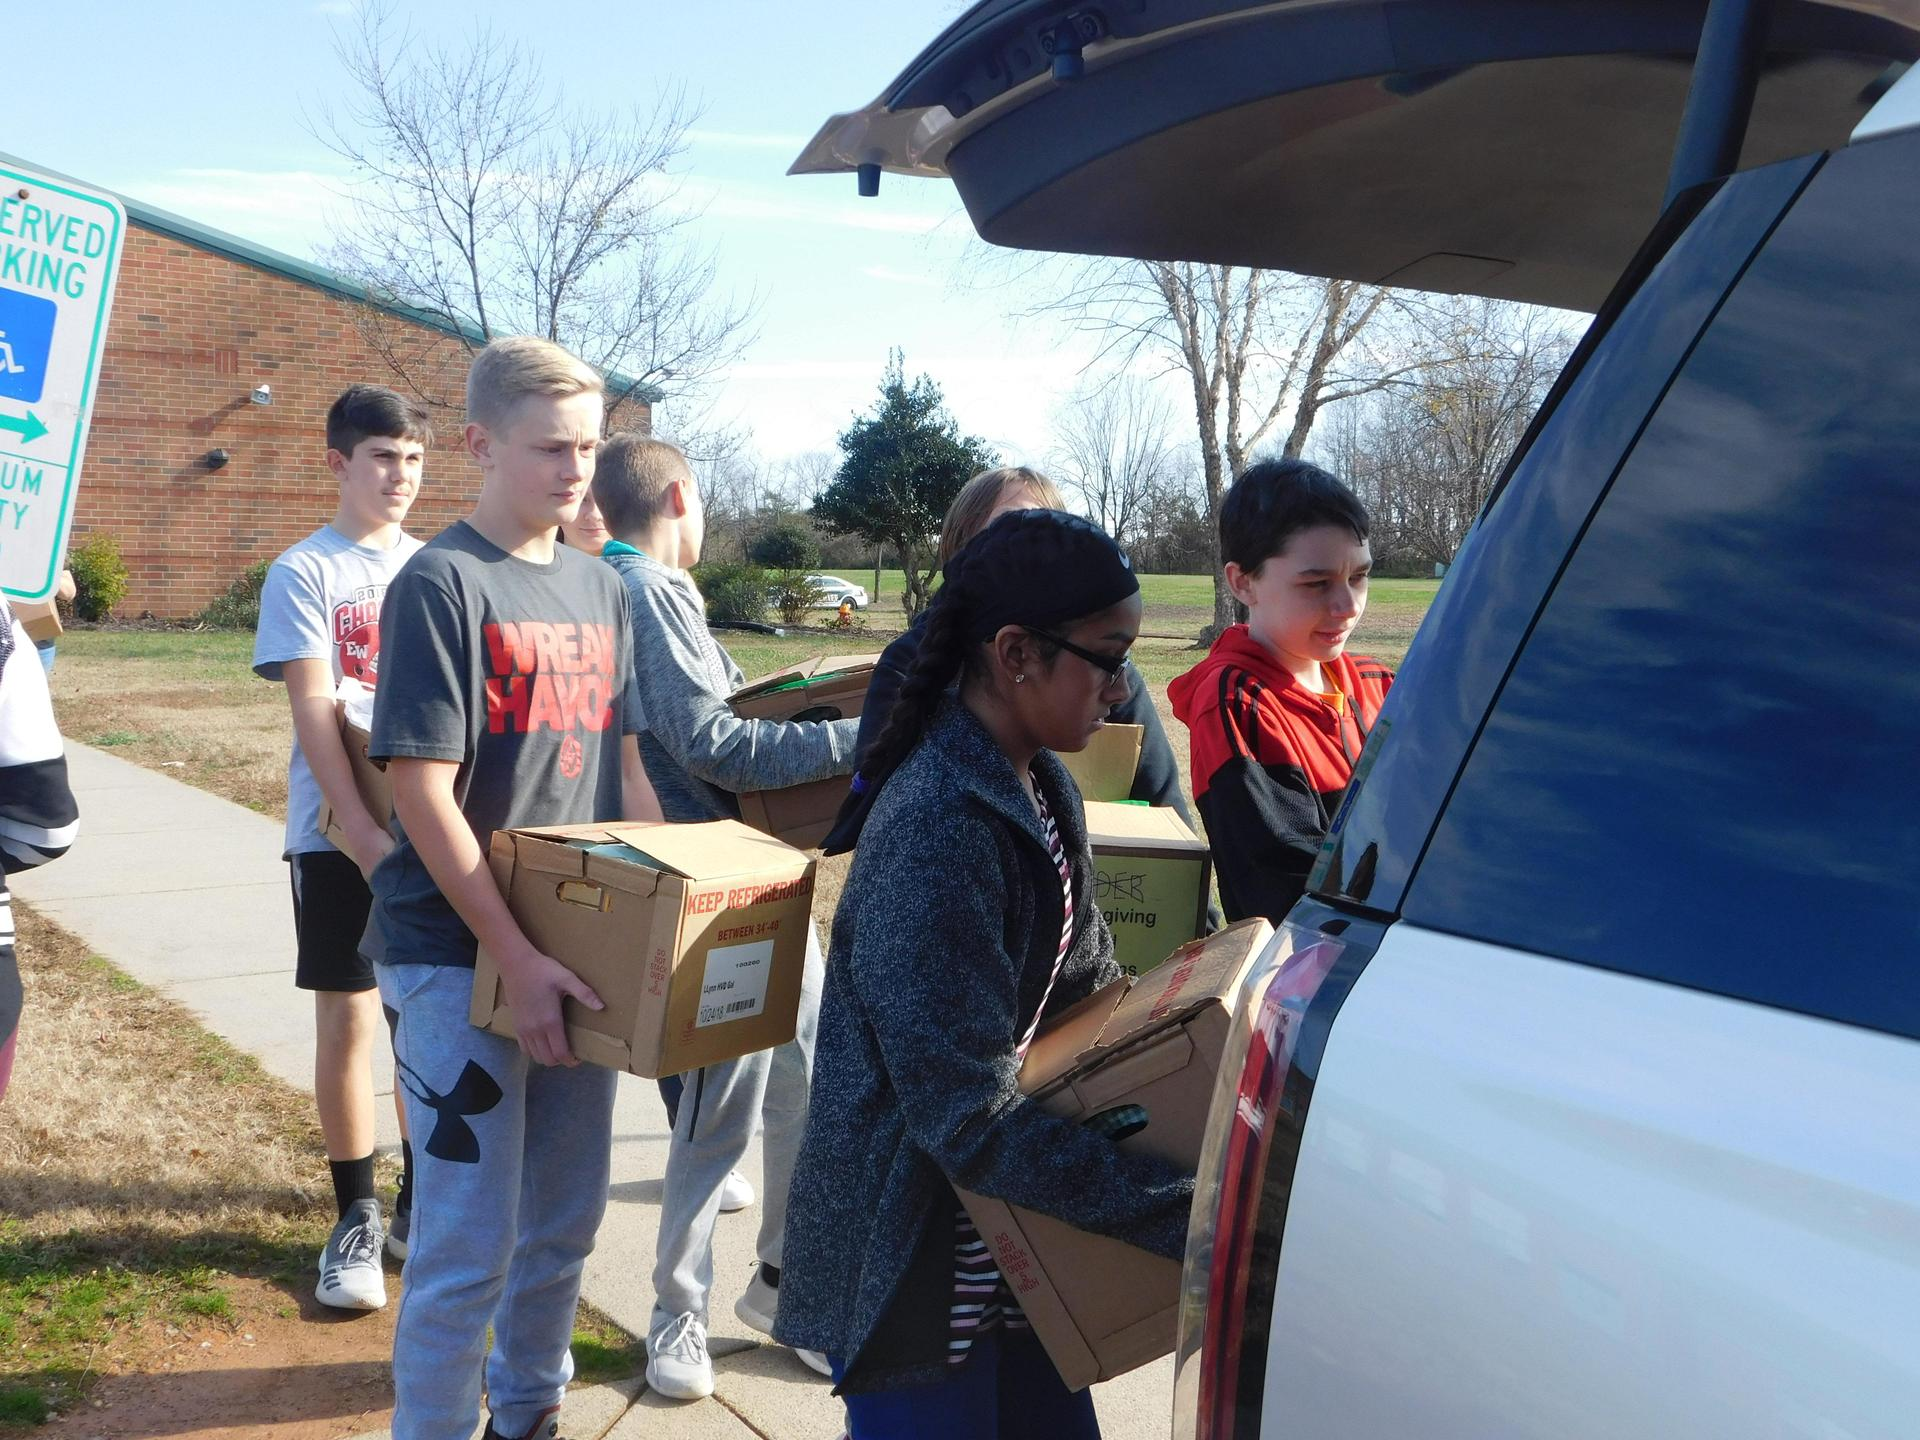 Student load car with boxes.